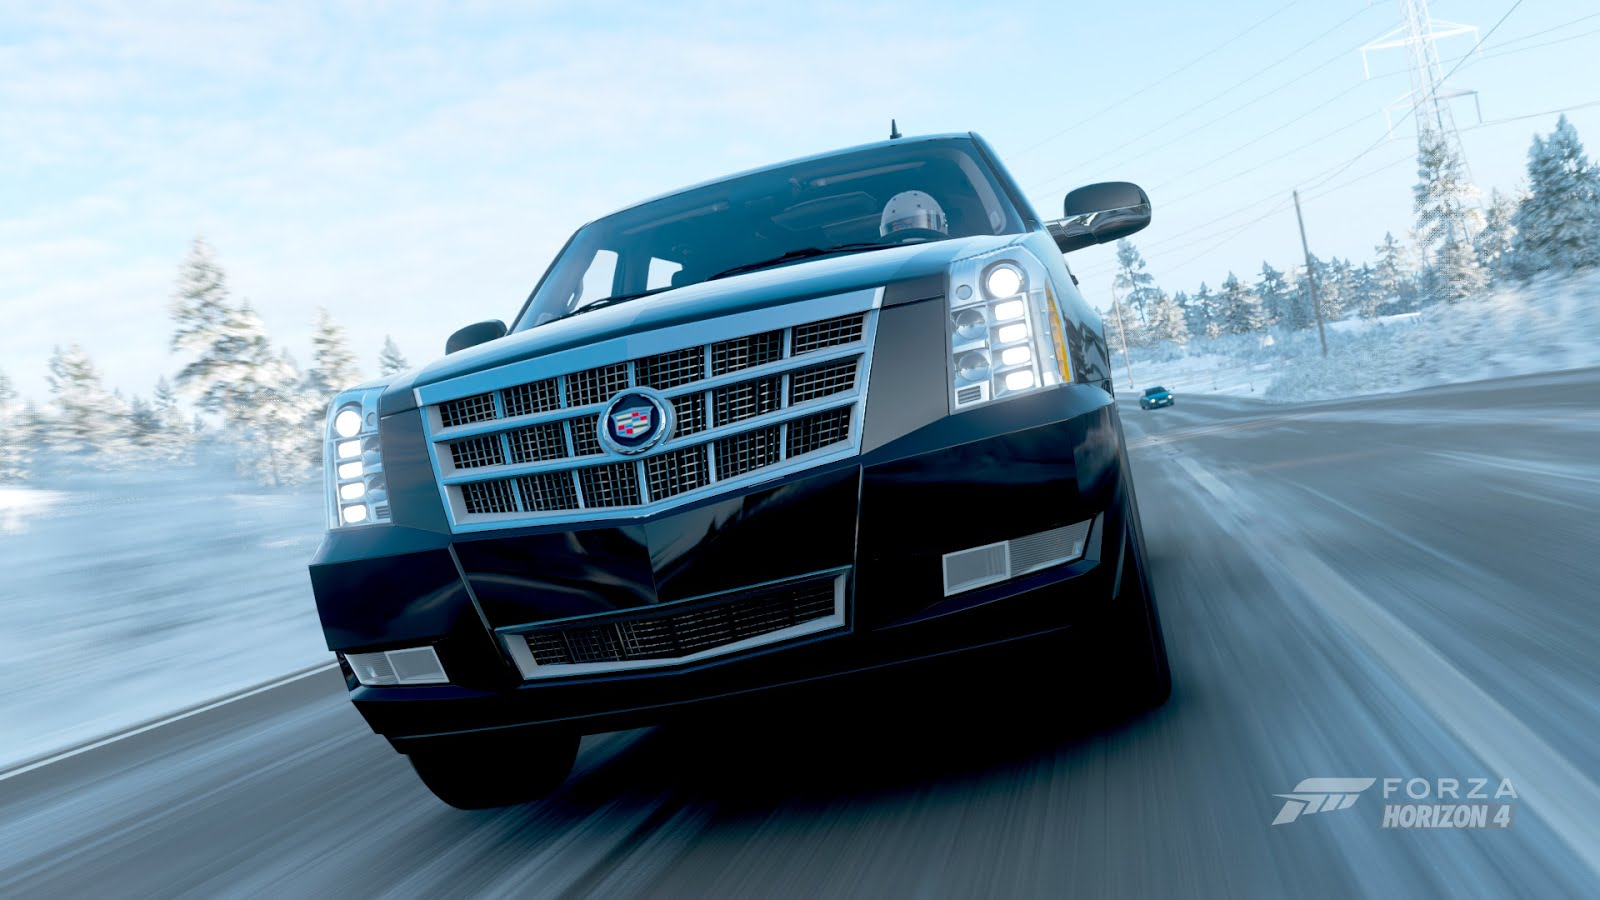 Leopaul's blog: Forza Horizon 4: Winter surprises from the US to the UK